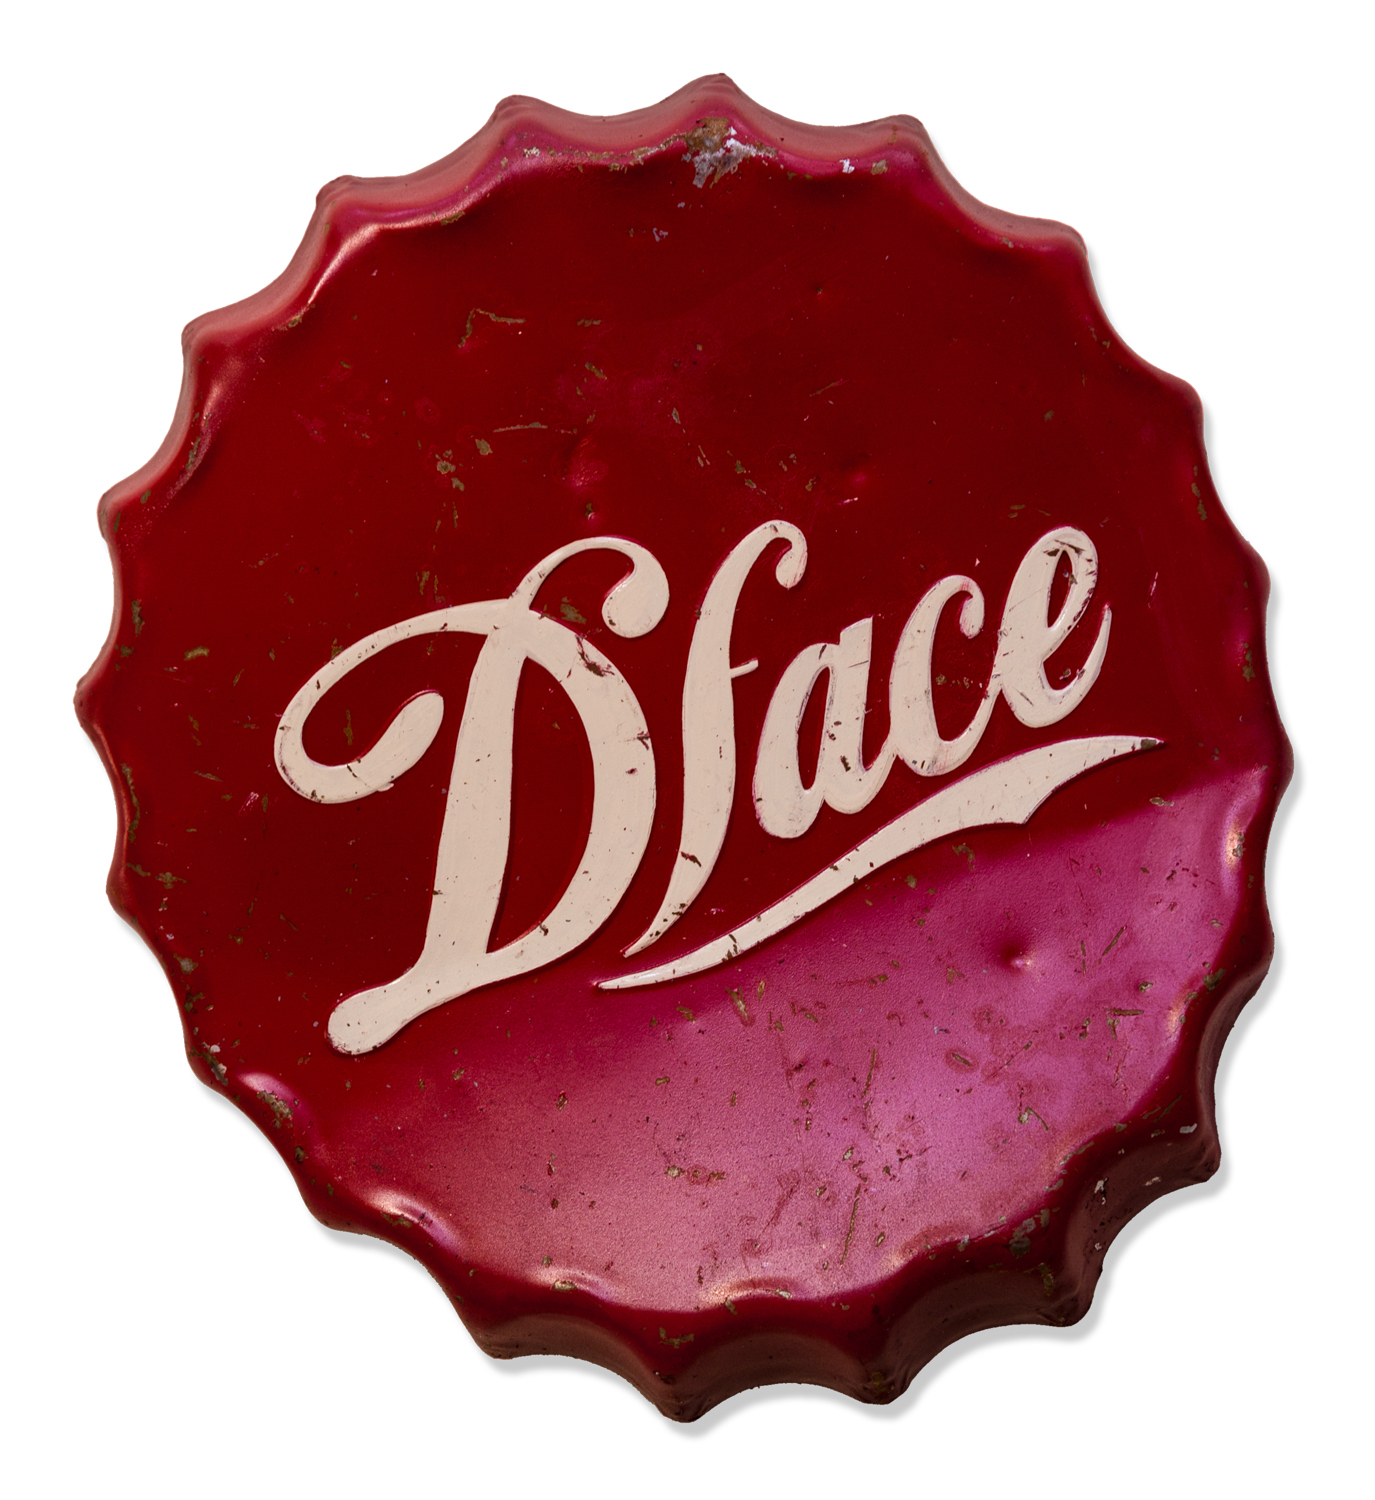 D*Face - Popping Tops - DFACE (2018